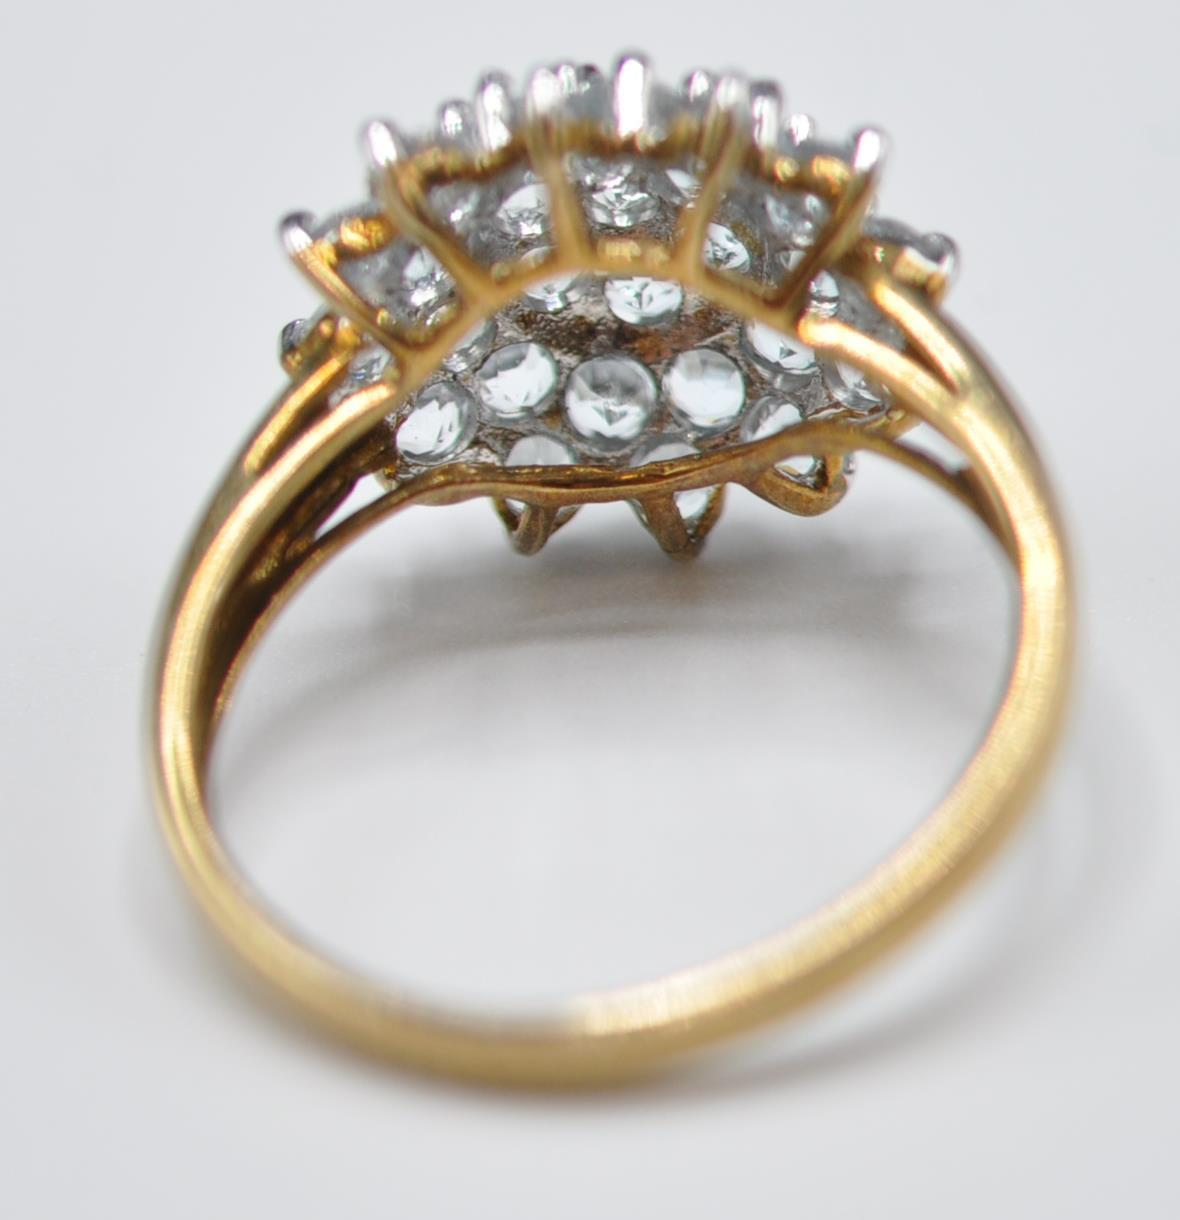 HALLMARKED 9CT GOLD AND BLUE STONE CLUSTER RING - Image 5 of 7